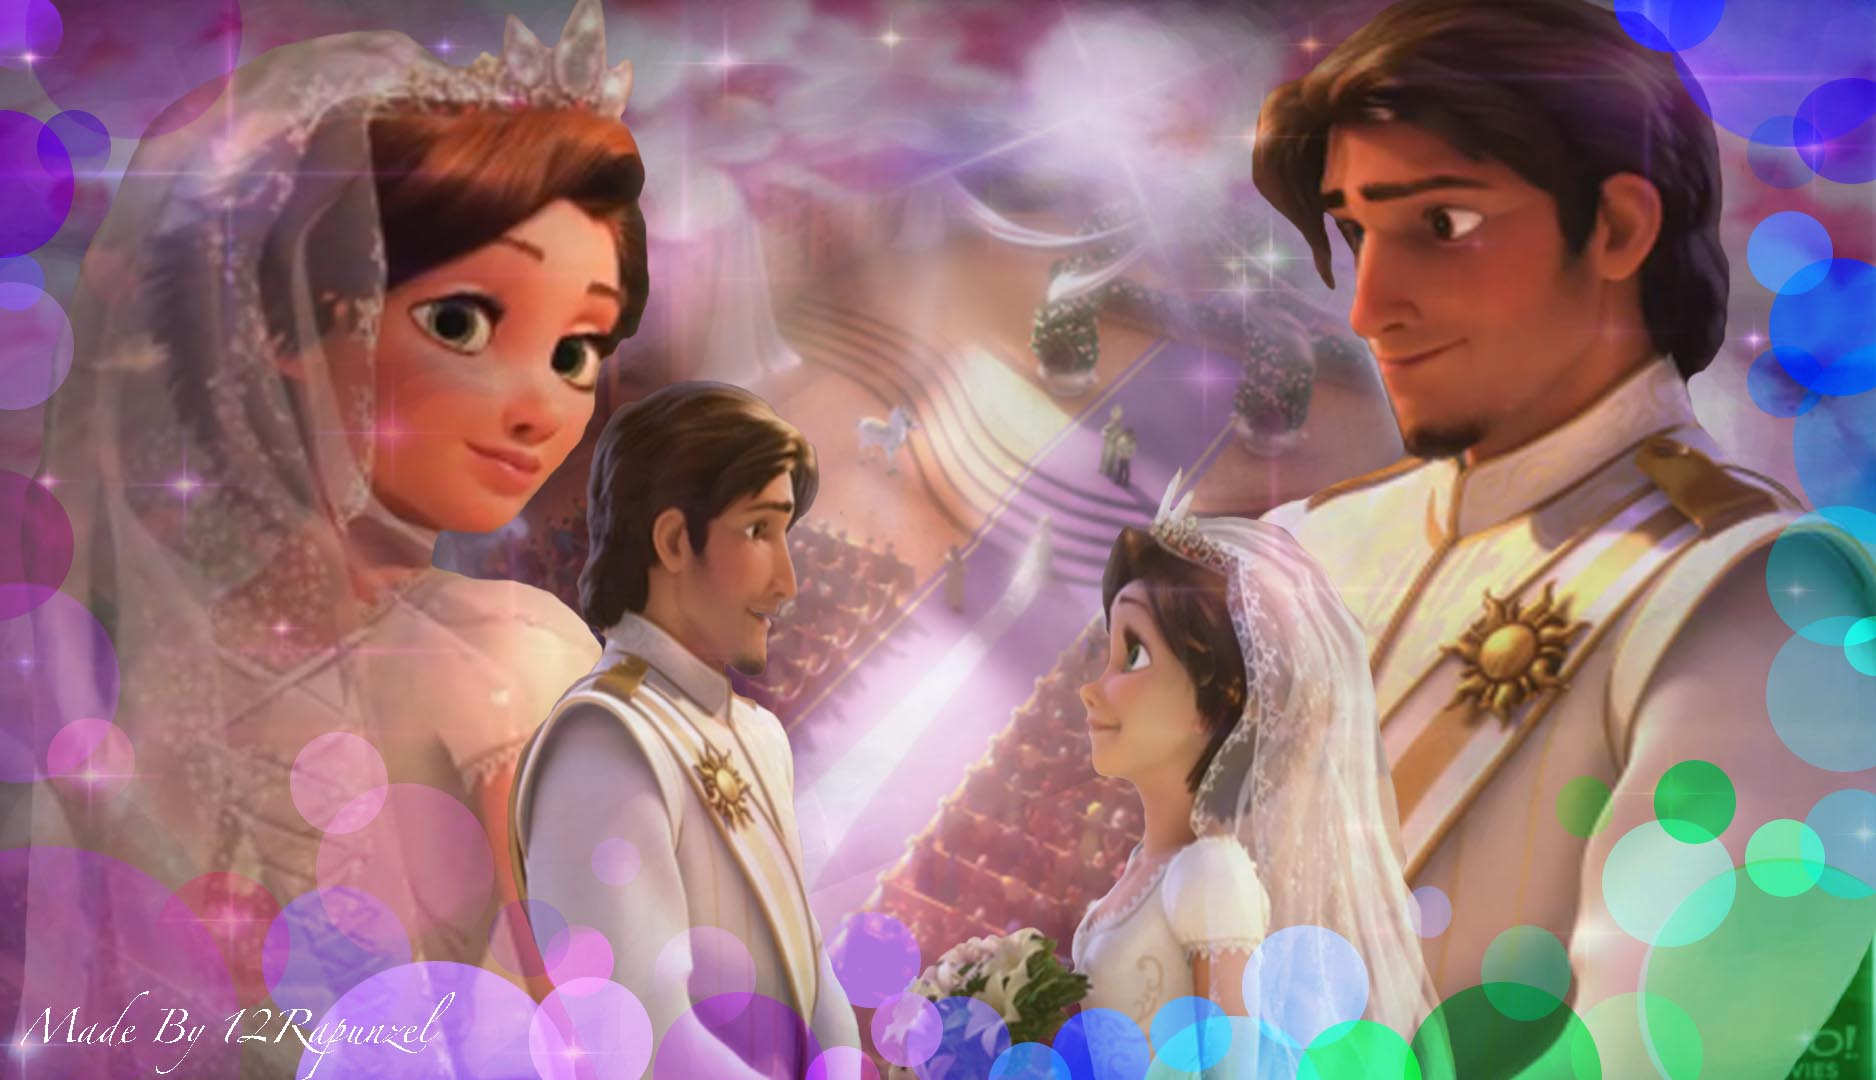 https://i2.wp.com/images5.fanpop.com/image/photos/30200000/Tangled-Ever-After-Wedding-rapunzel-fitzherbert-art-12rapunzel-30270107-1876-1080.jpg